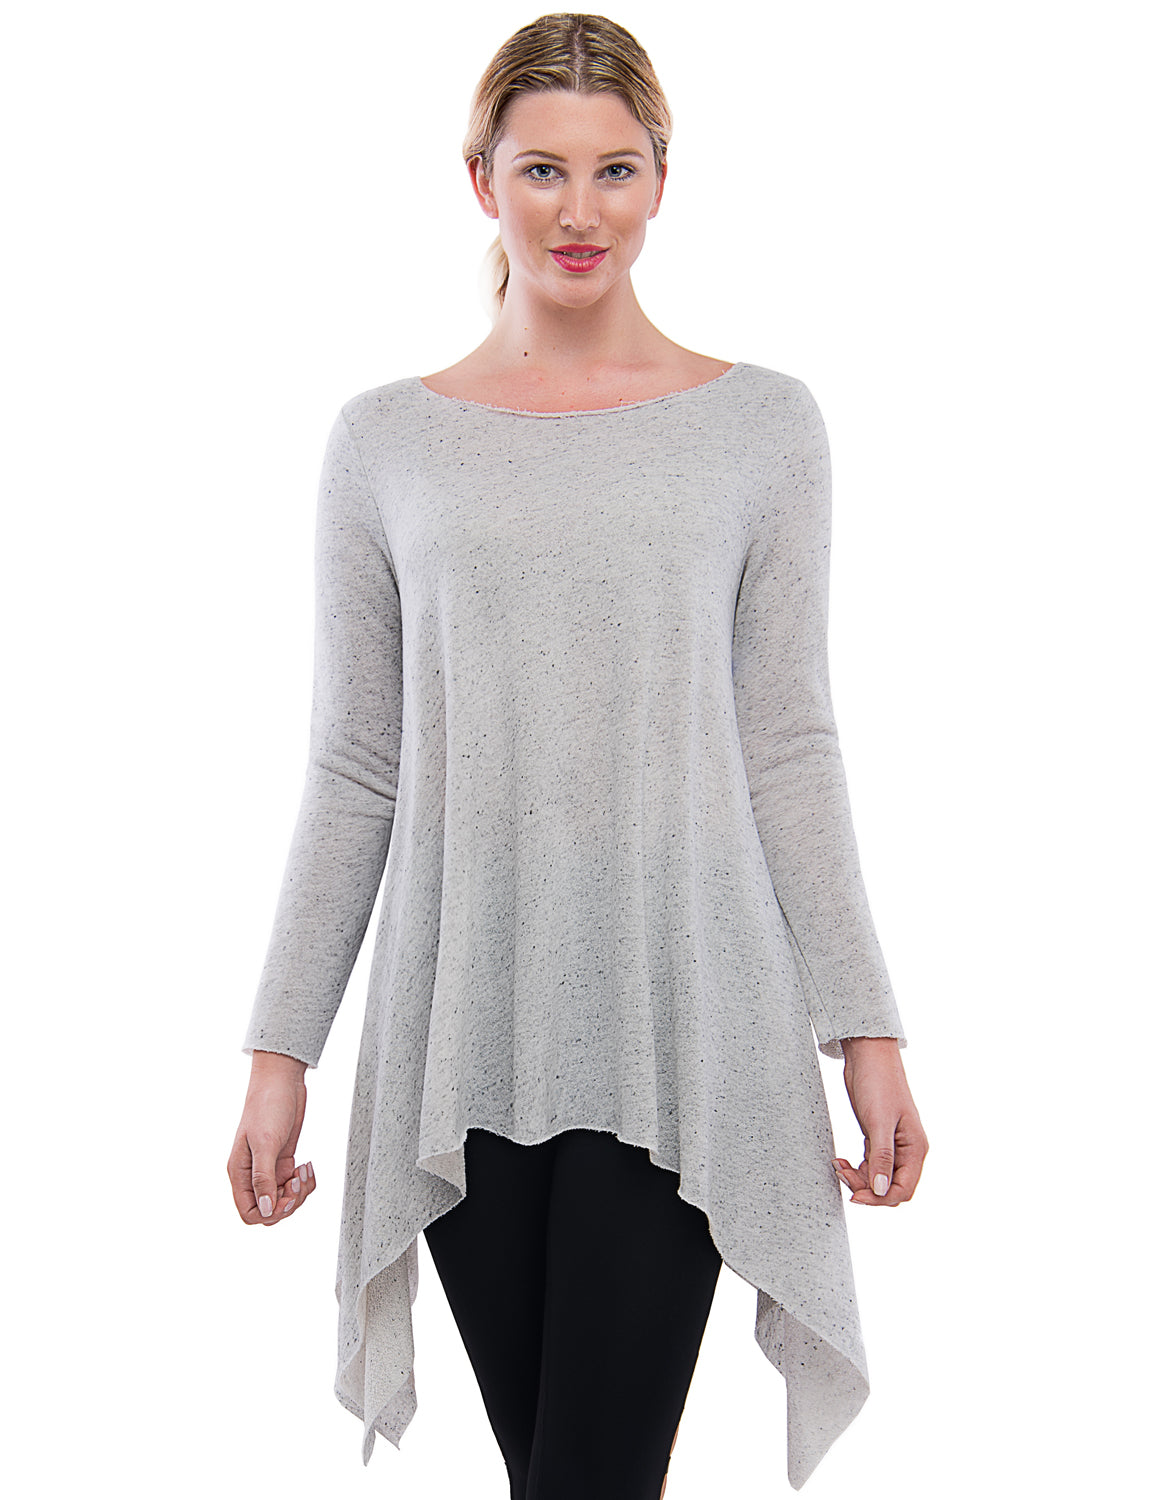 2fd8e33a266 TAM WARE Women's Stylish Long Sleeve French Terry Tunic Top (Made in  USA)-TWAWD2167